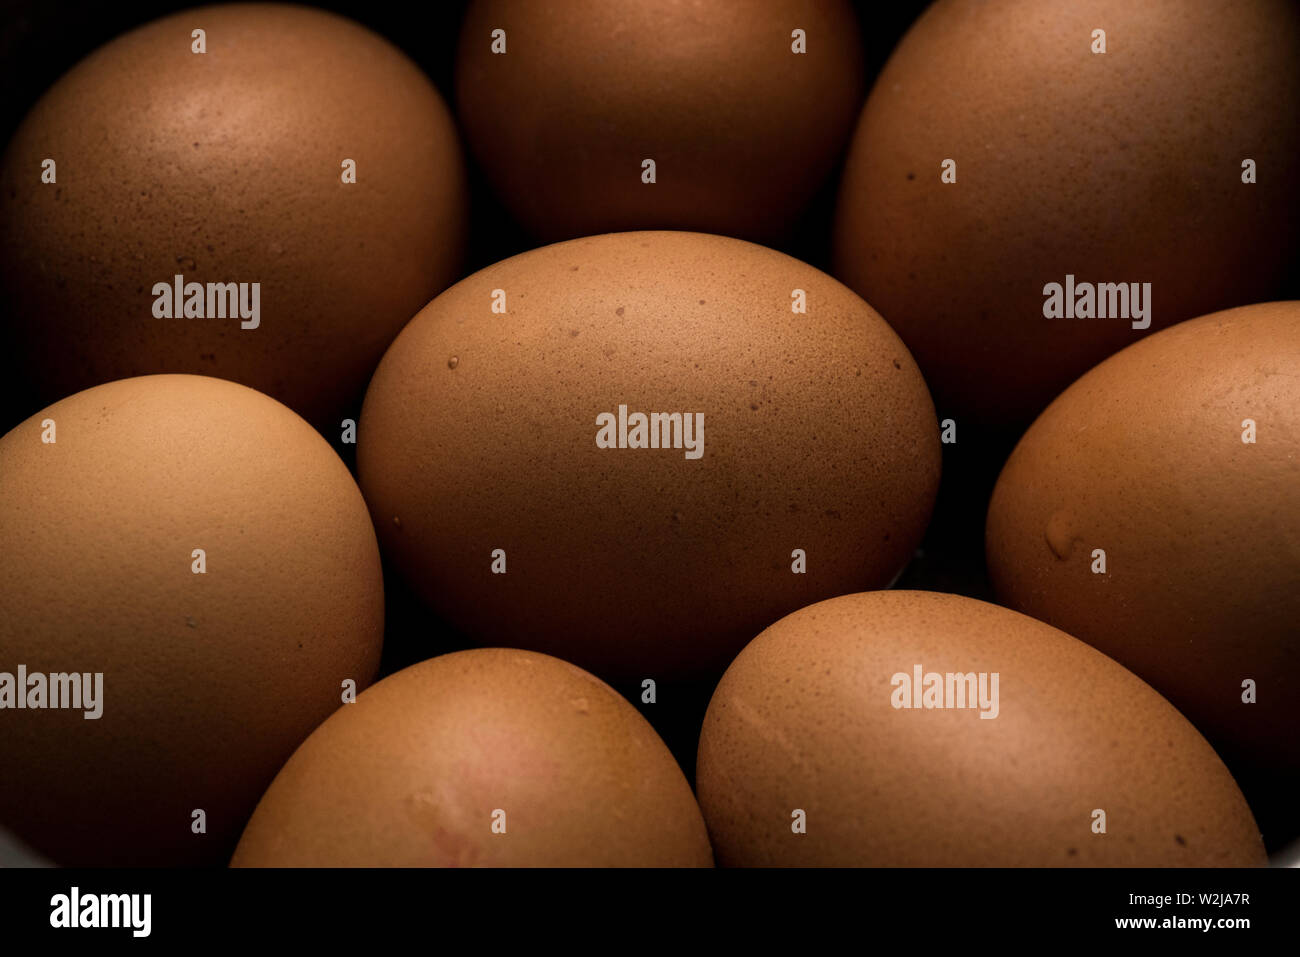 An arrangement of eight brown eggs. - Stock Image